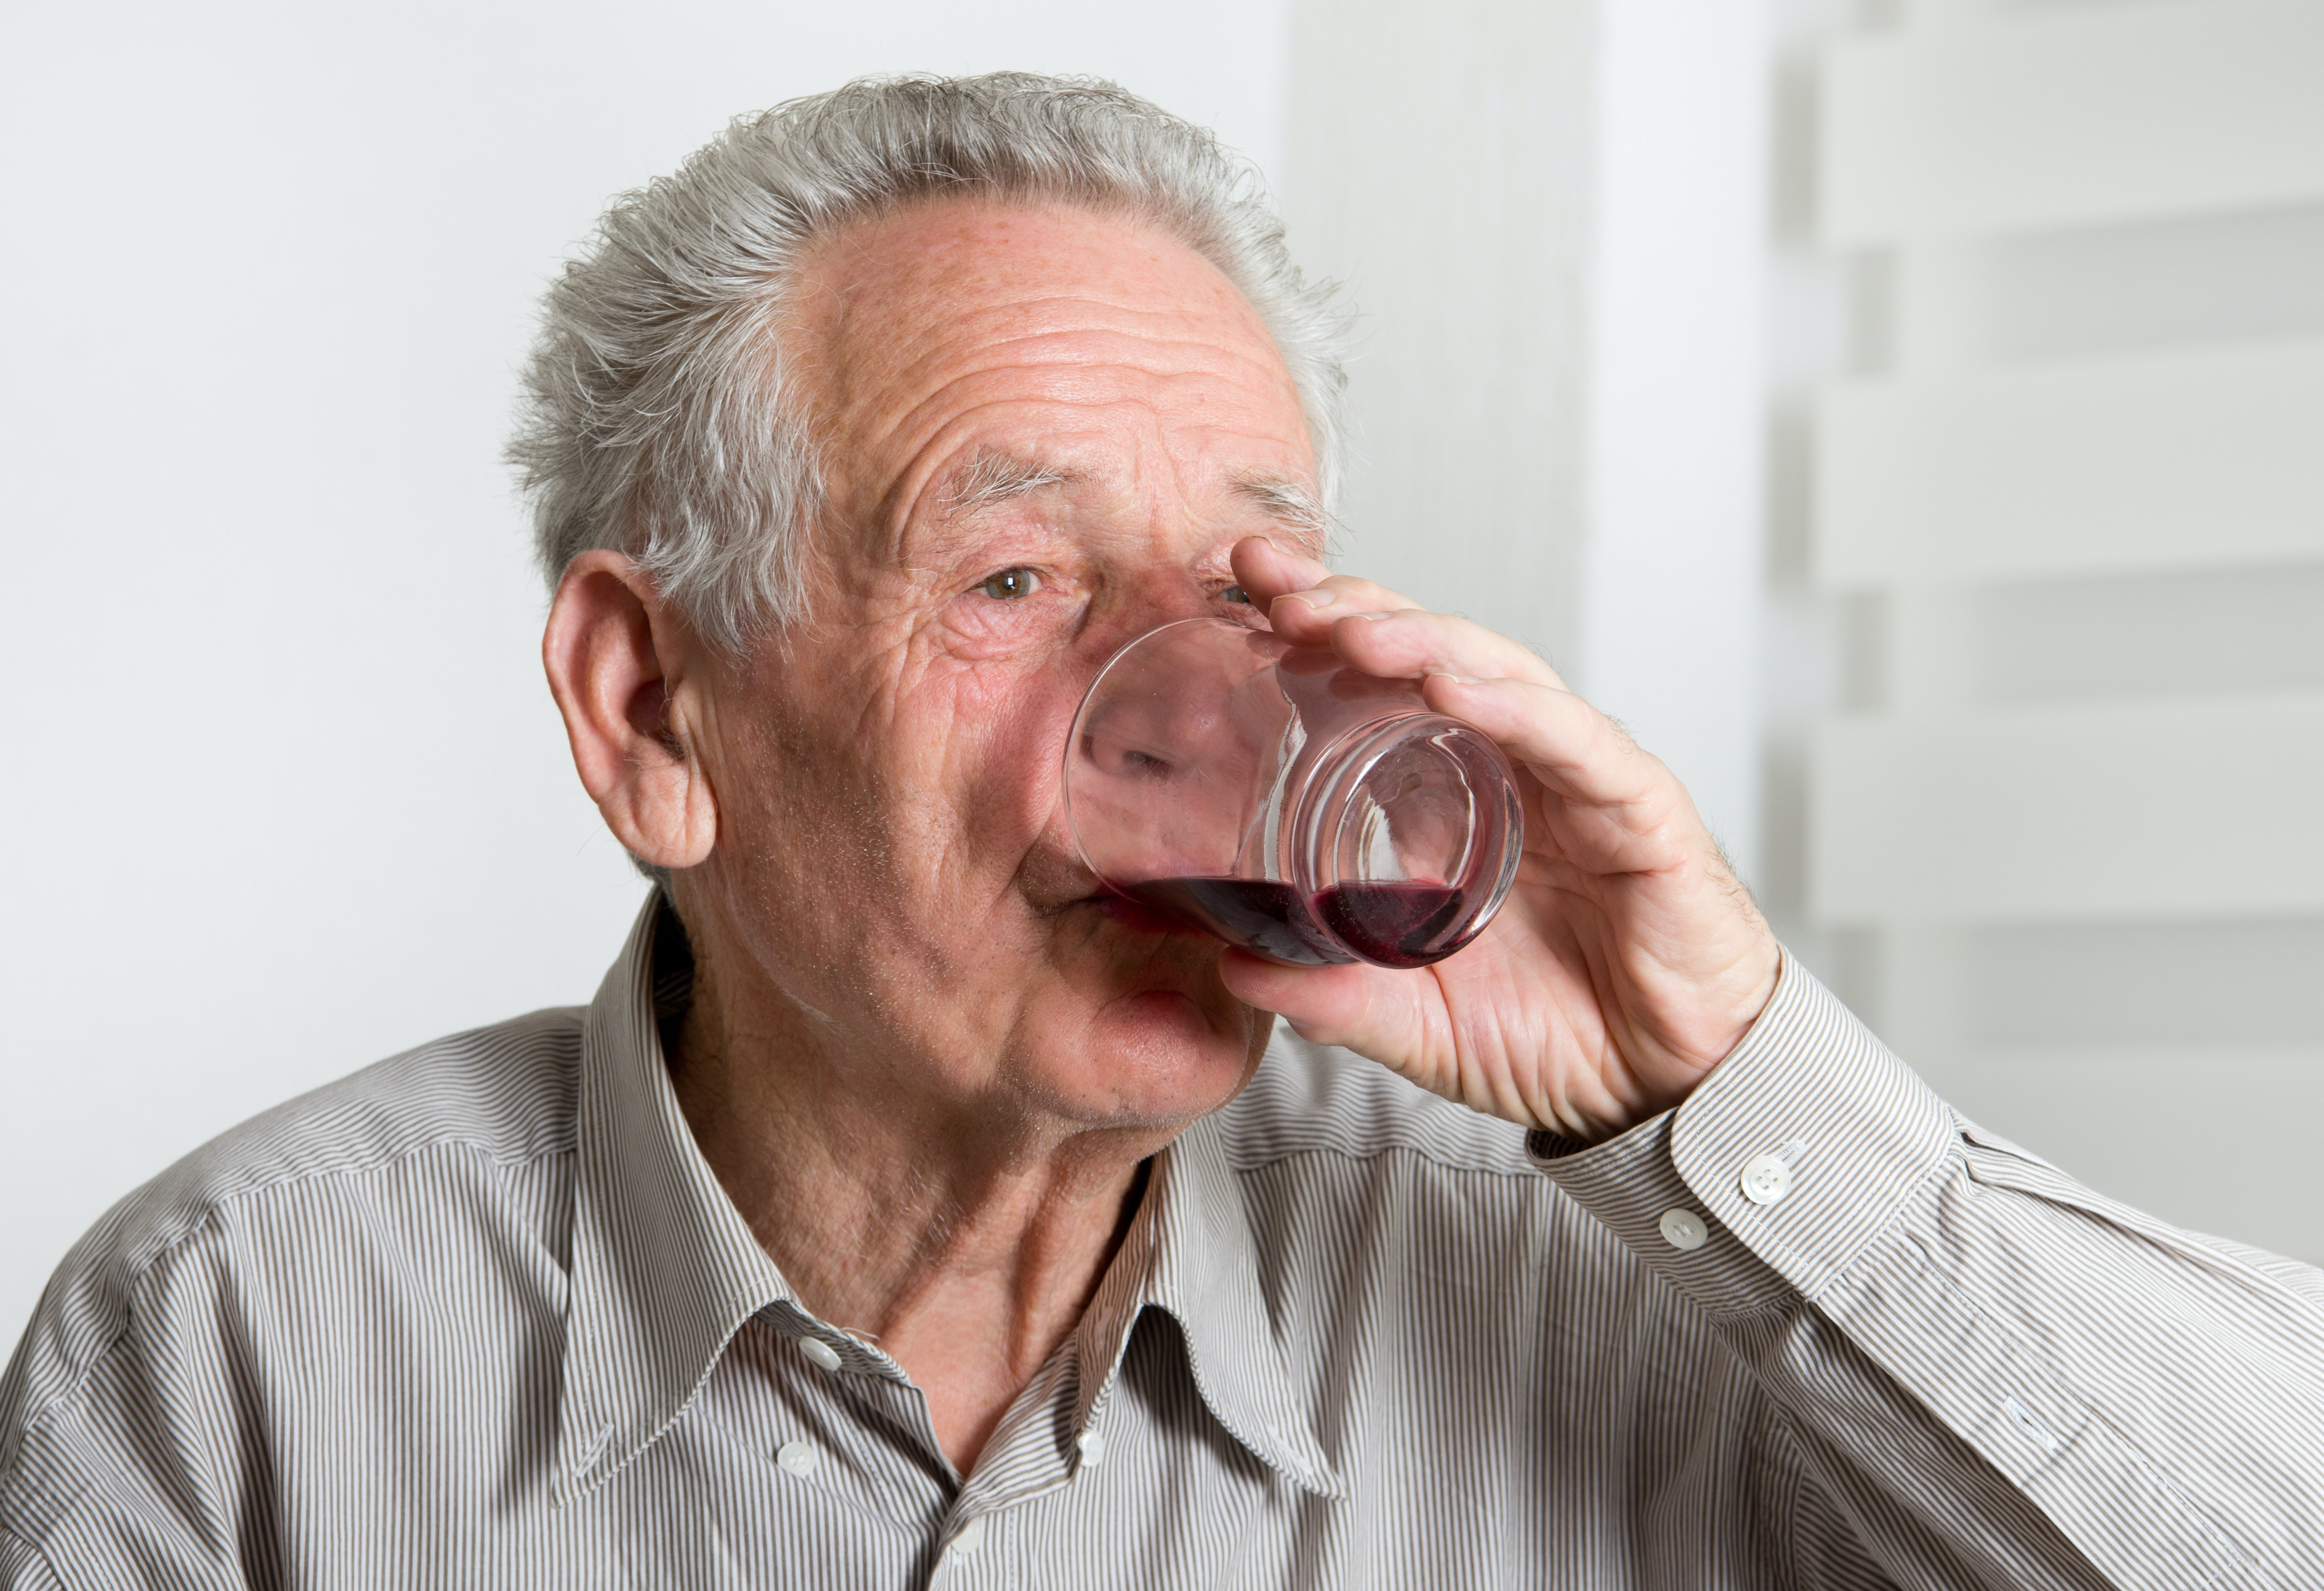 Teetotalism in midlife makes you more likely to develop dementia? What the research actually says